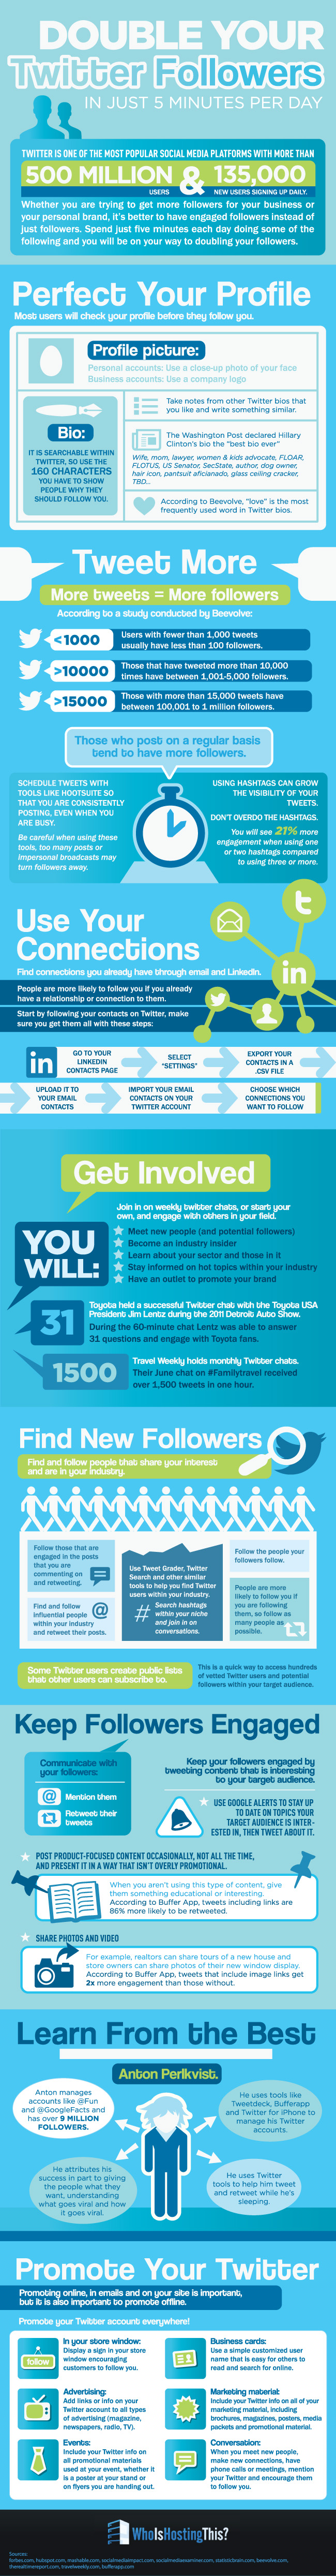 Double-your-twitter-followers-in-just-5-minutes-per-day-infographic